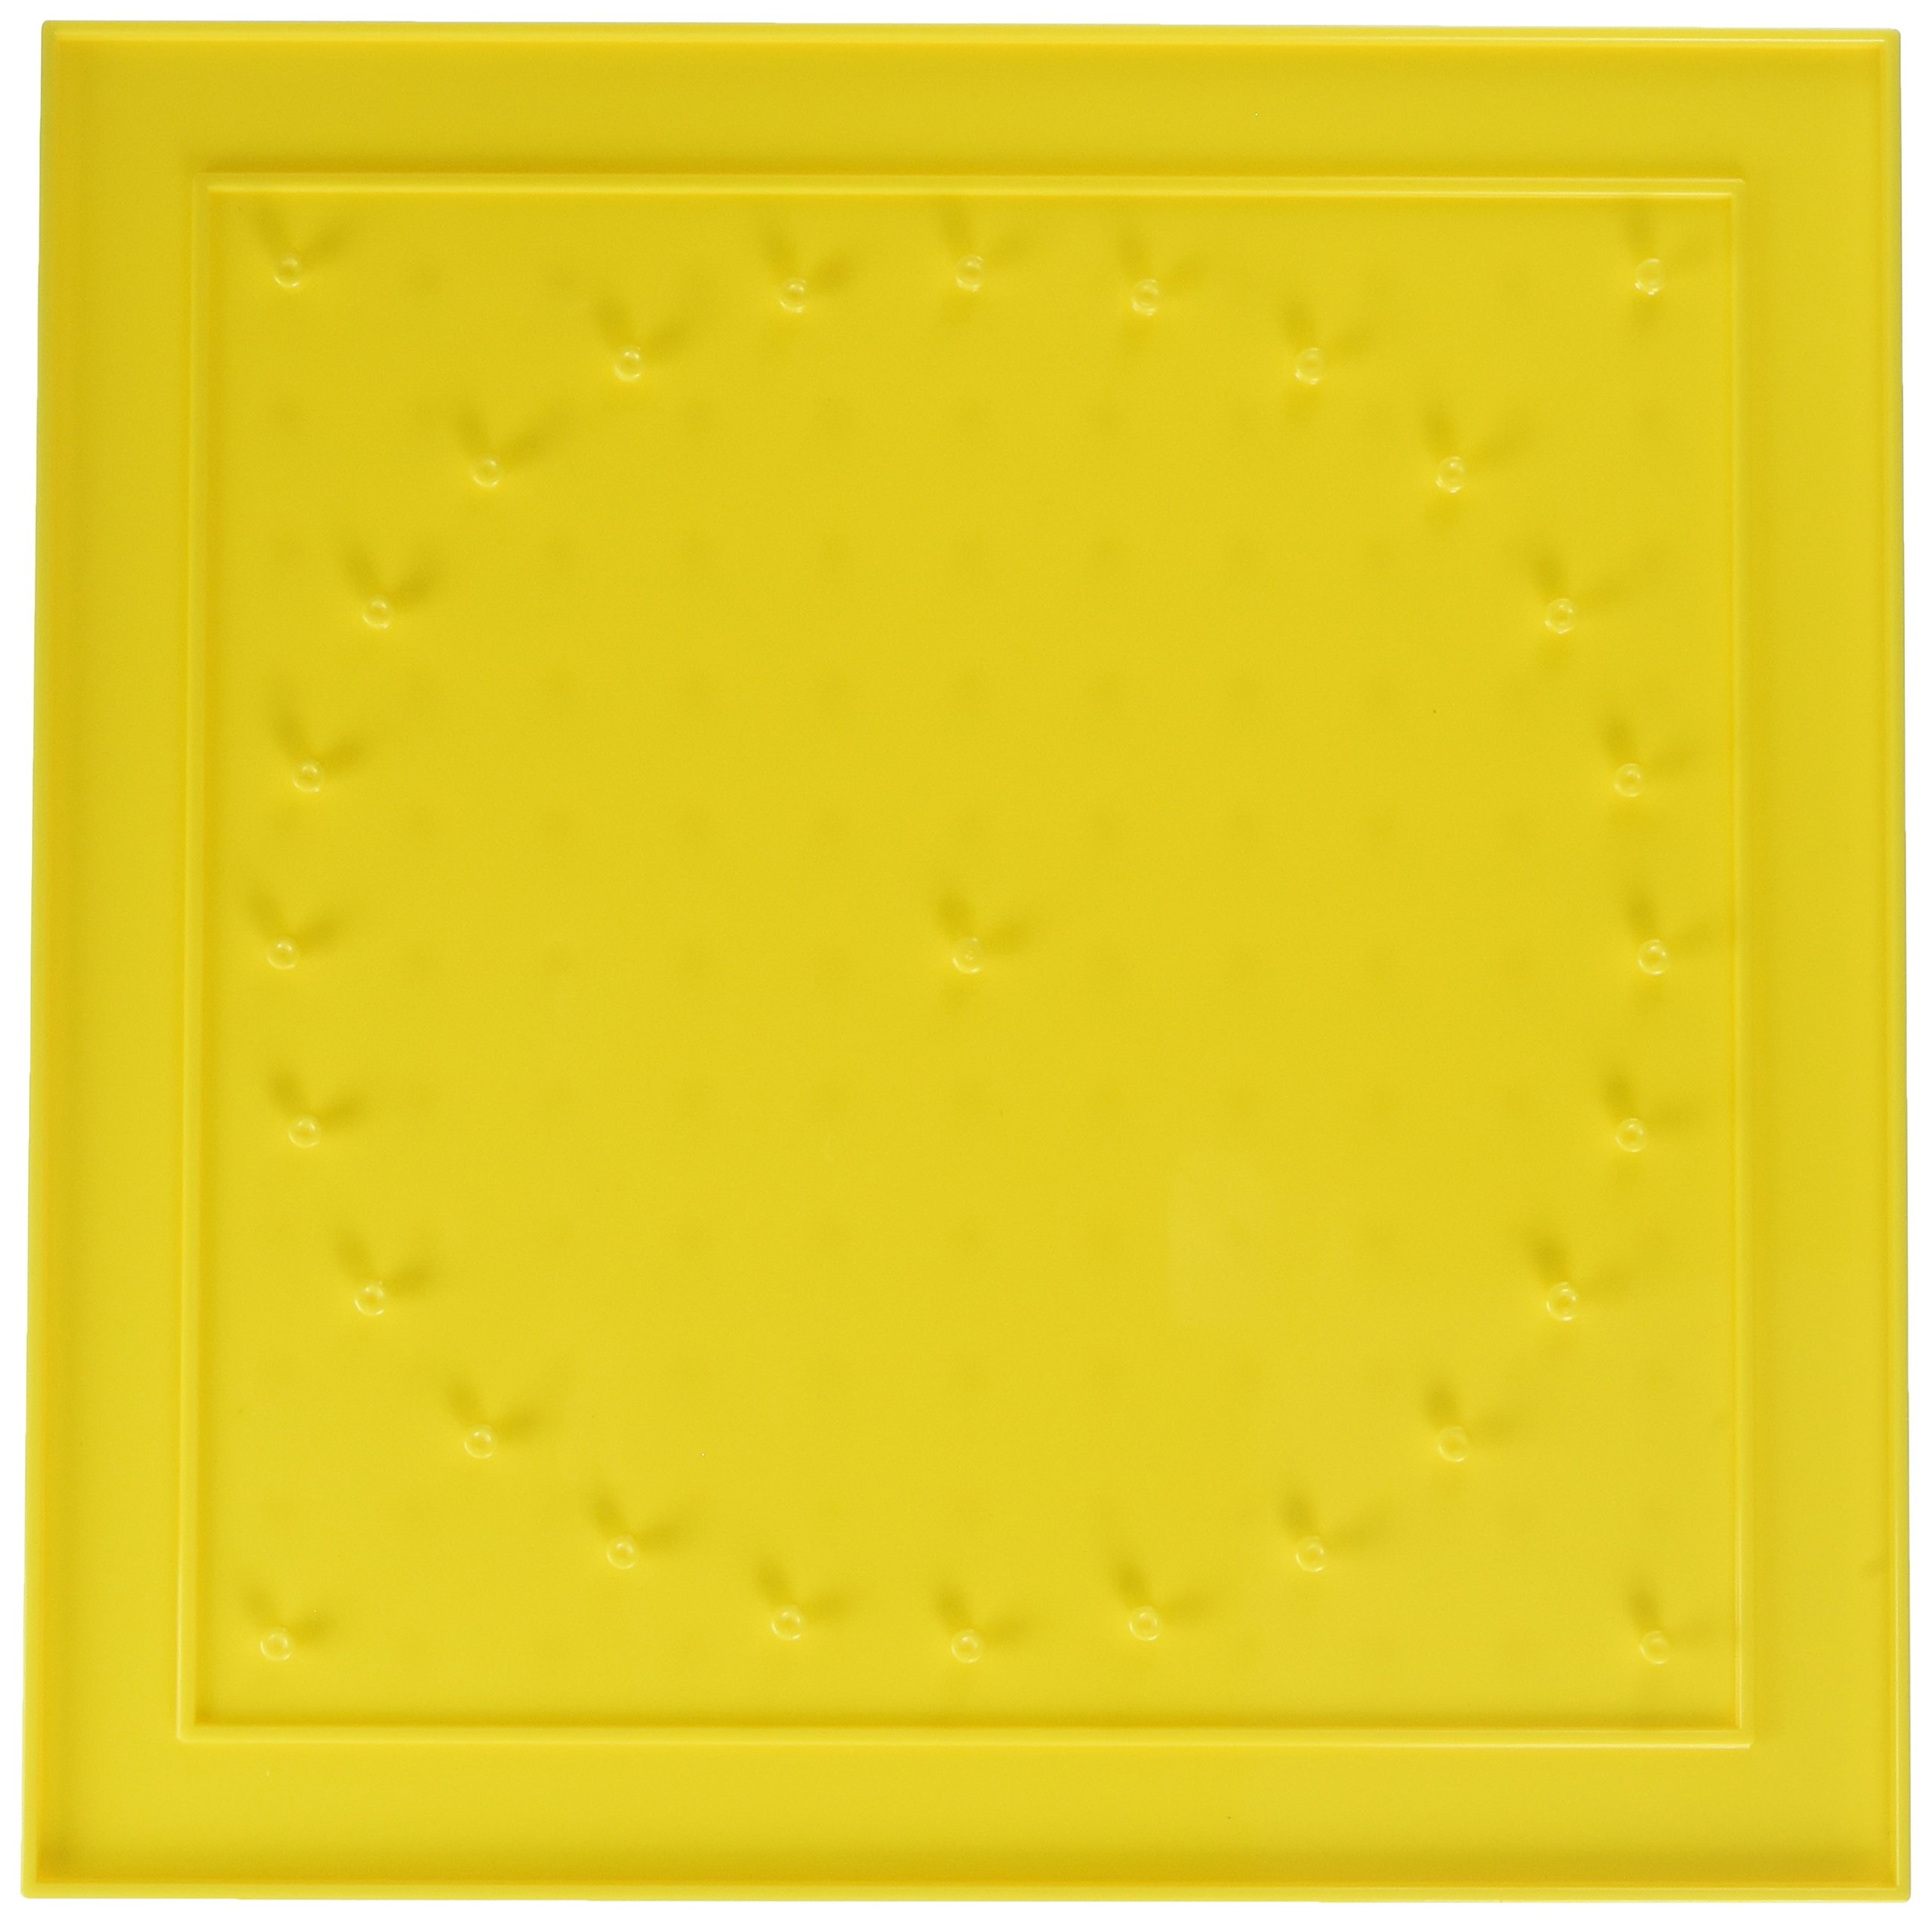 School Smart Geoboards with Rubber Bands - 10 1/2 x 10 1/2 - Set of 6 - Yellow